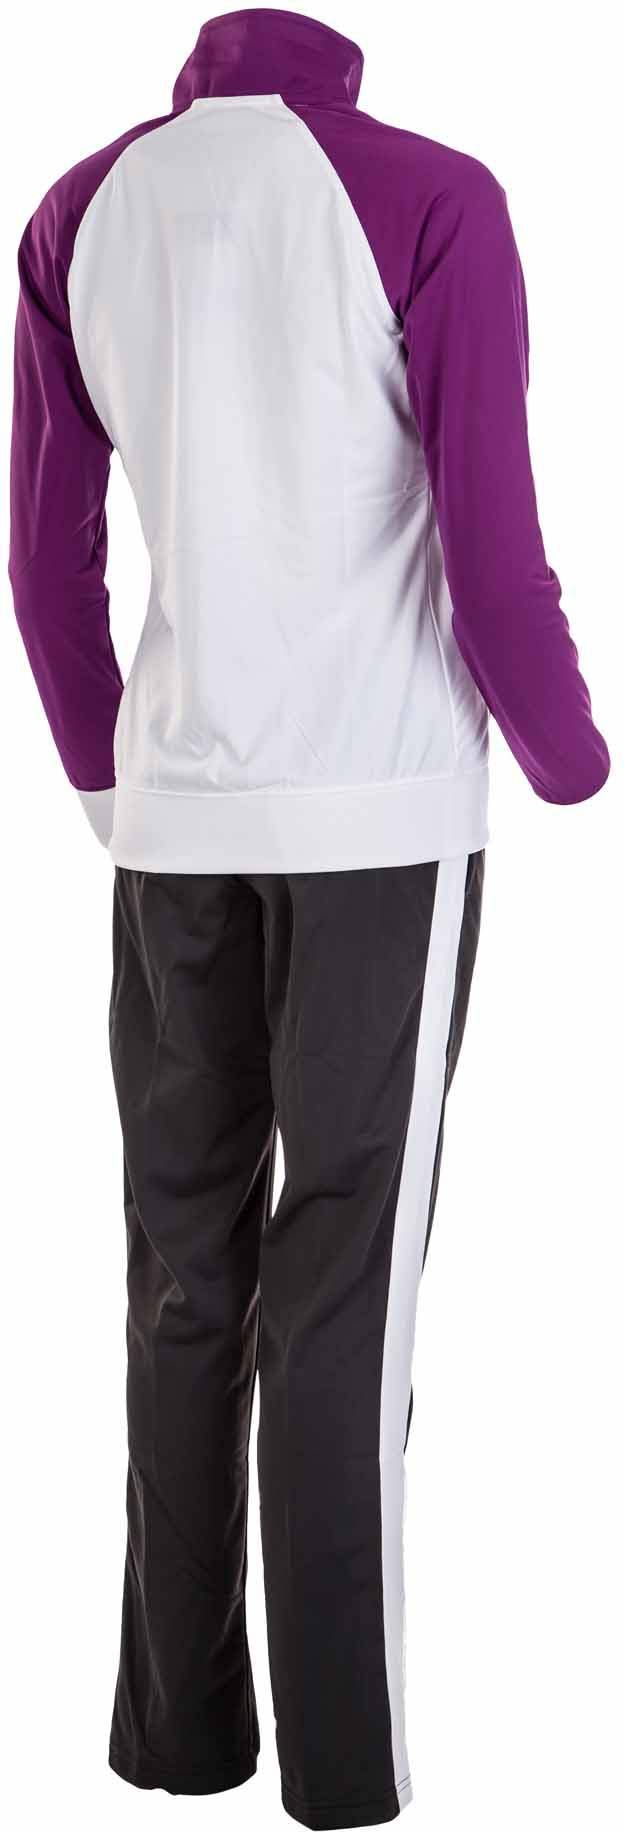 Nike POLYWARP RAGLAN W UP WERE | sportisimo.com